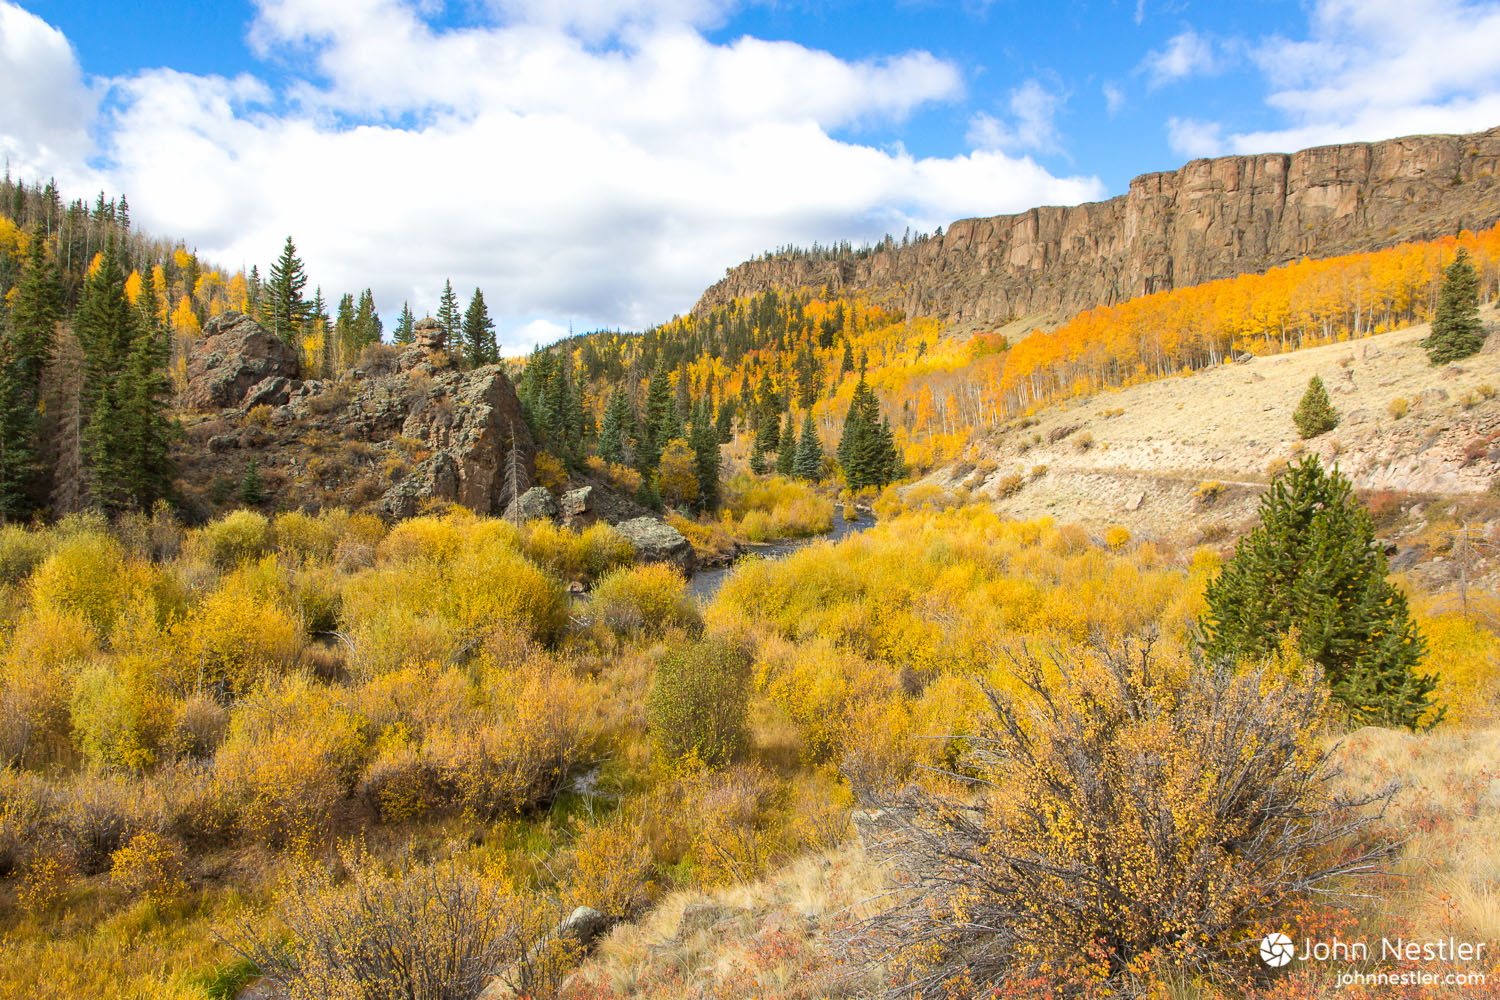 Gorgeous fall colors alongside Cebolla Creek. You'll follow this beautiful creek for quite a while during the La Garita Wilderness detour.